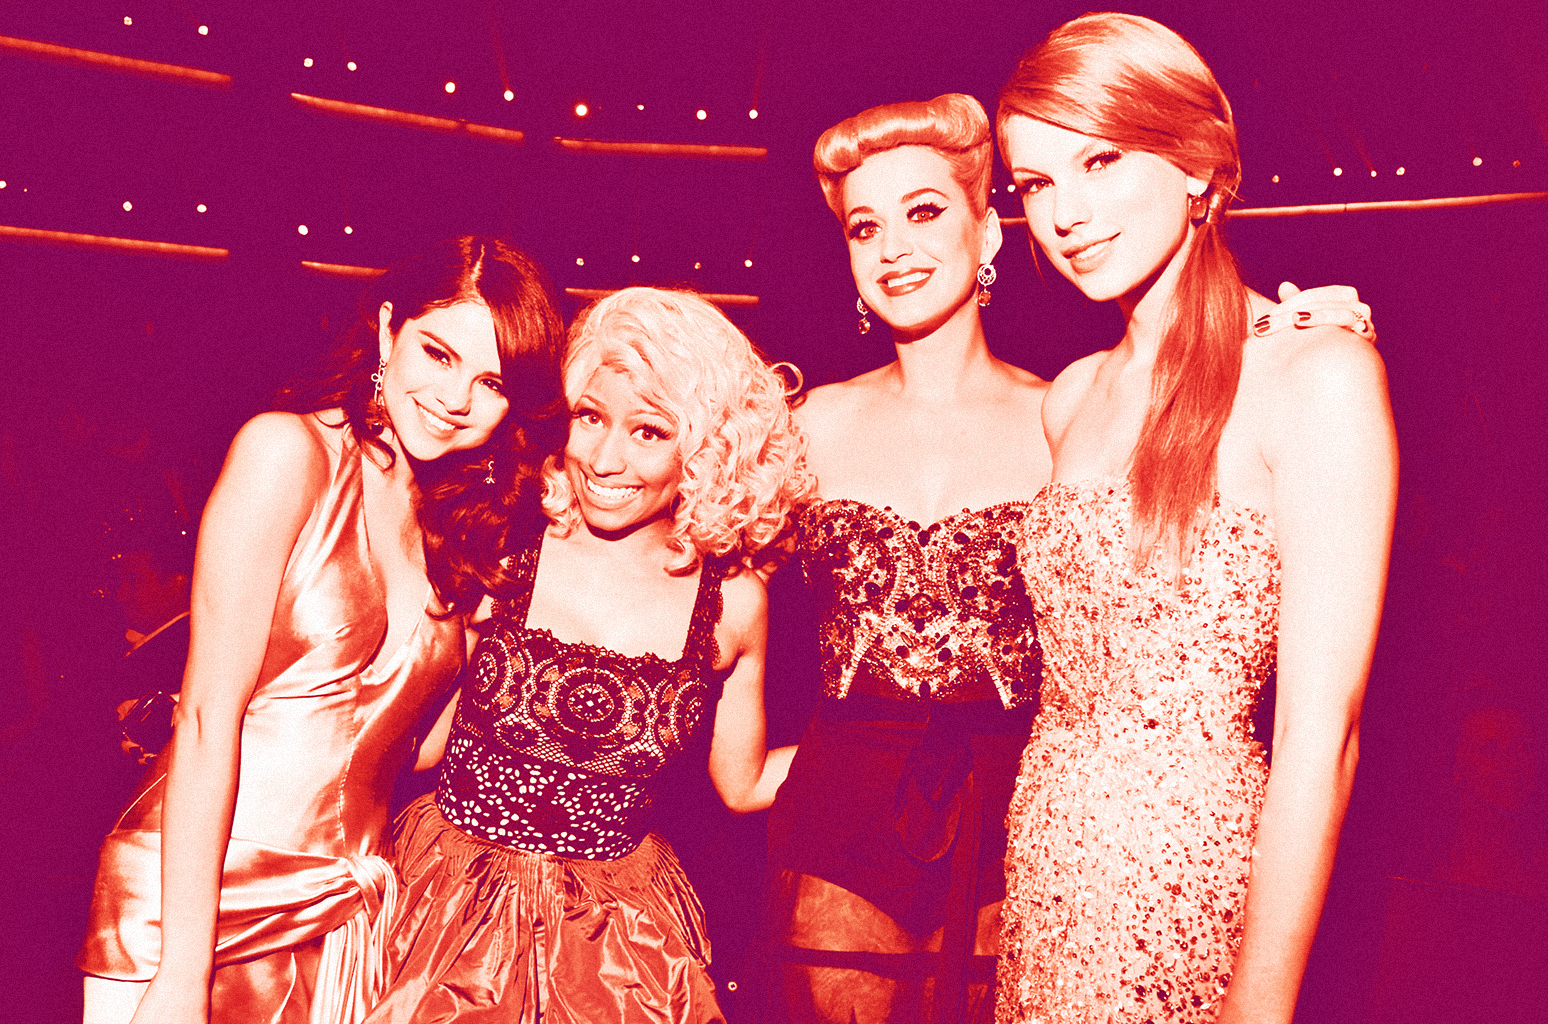 Below's a picture of Nicki attending the 2011 American Music Awards in L.a, California with Katy Perry as well as Taylor Swift.